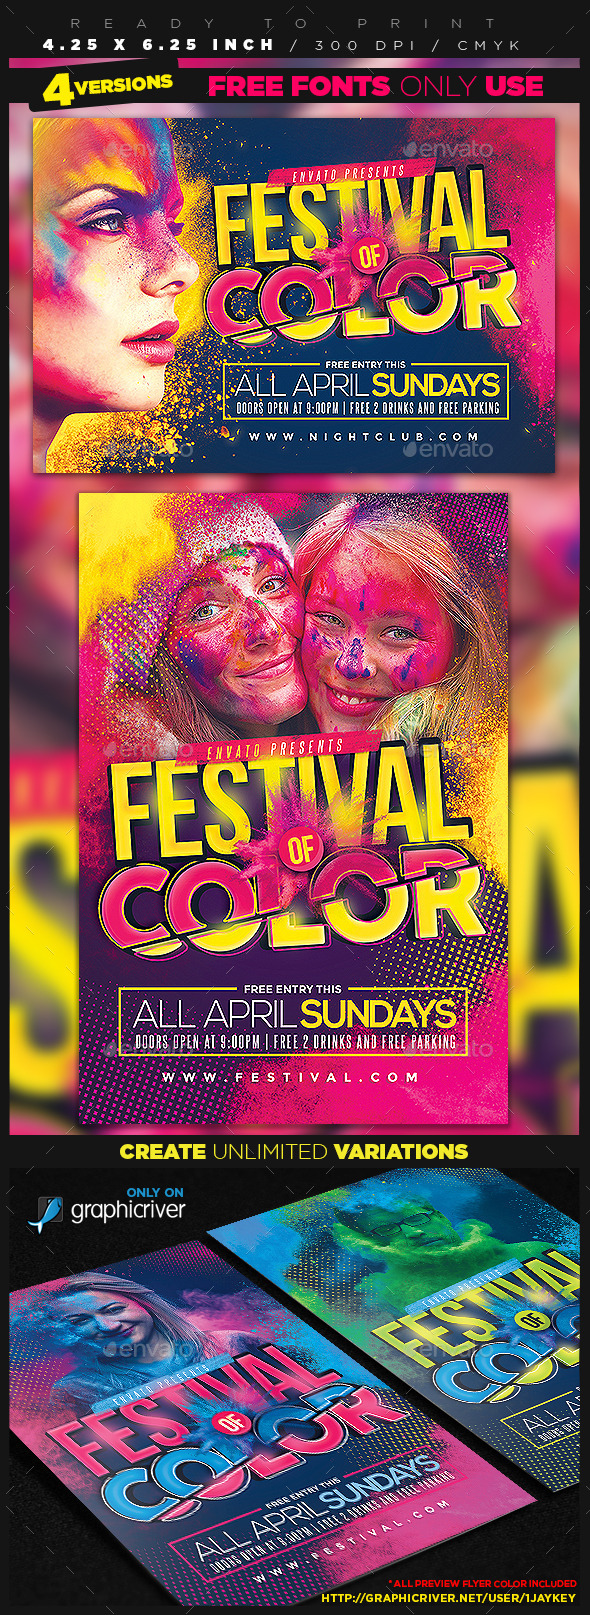 GraphicRiver Festival of Color Event Flyer 11244060